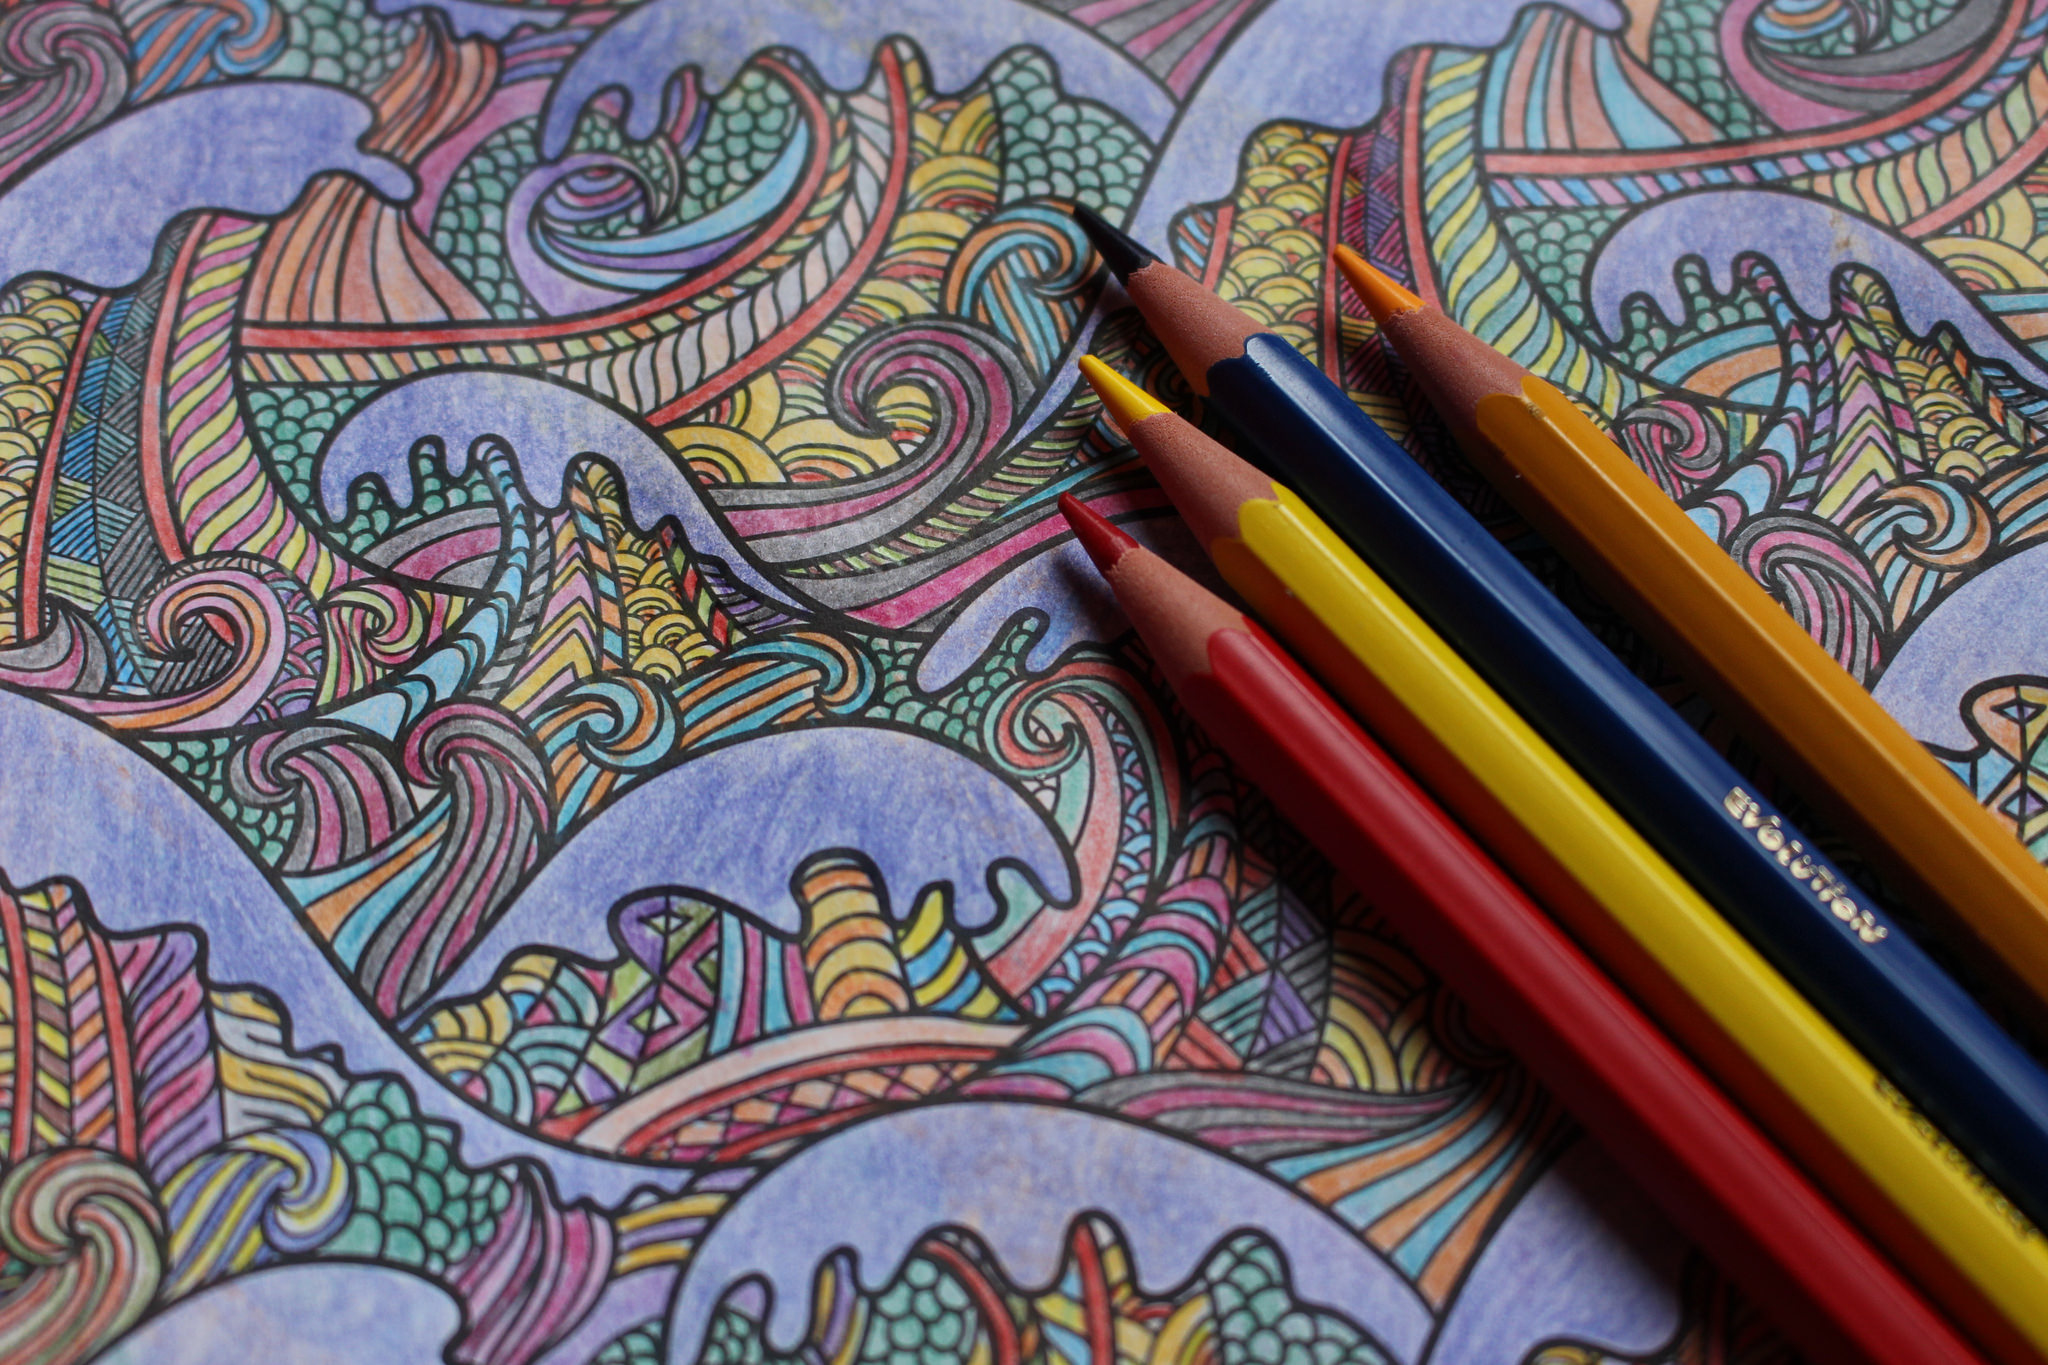 Colouring in for adults examples - Colouring In For Adults Examples 2